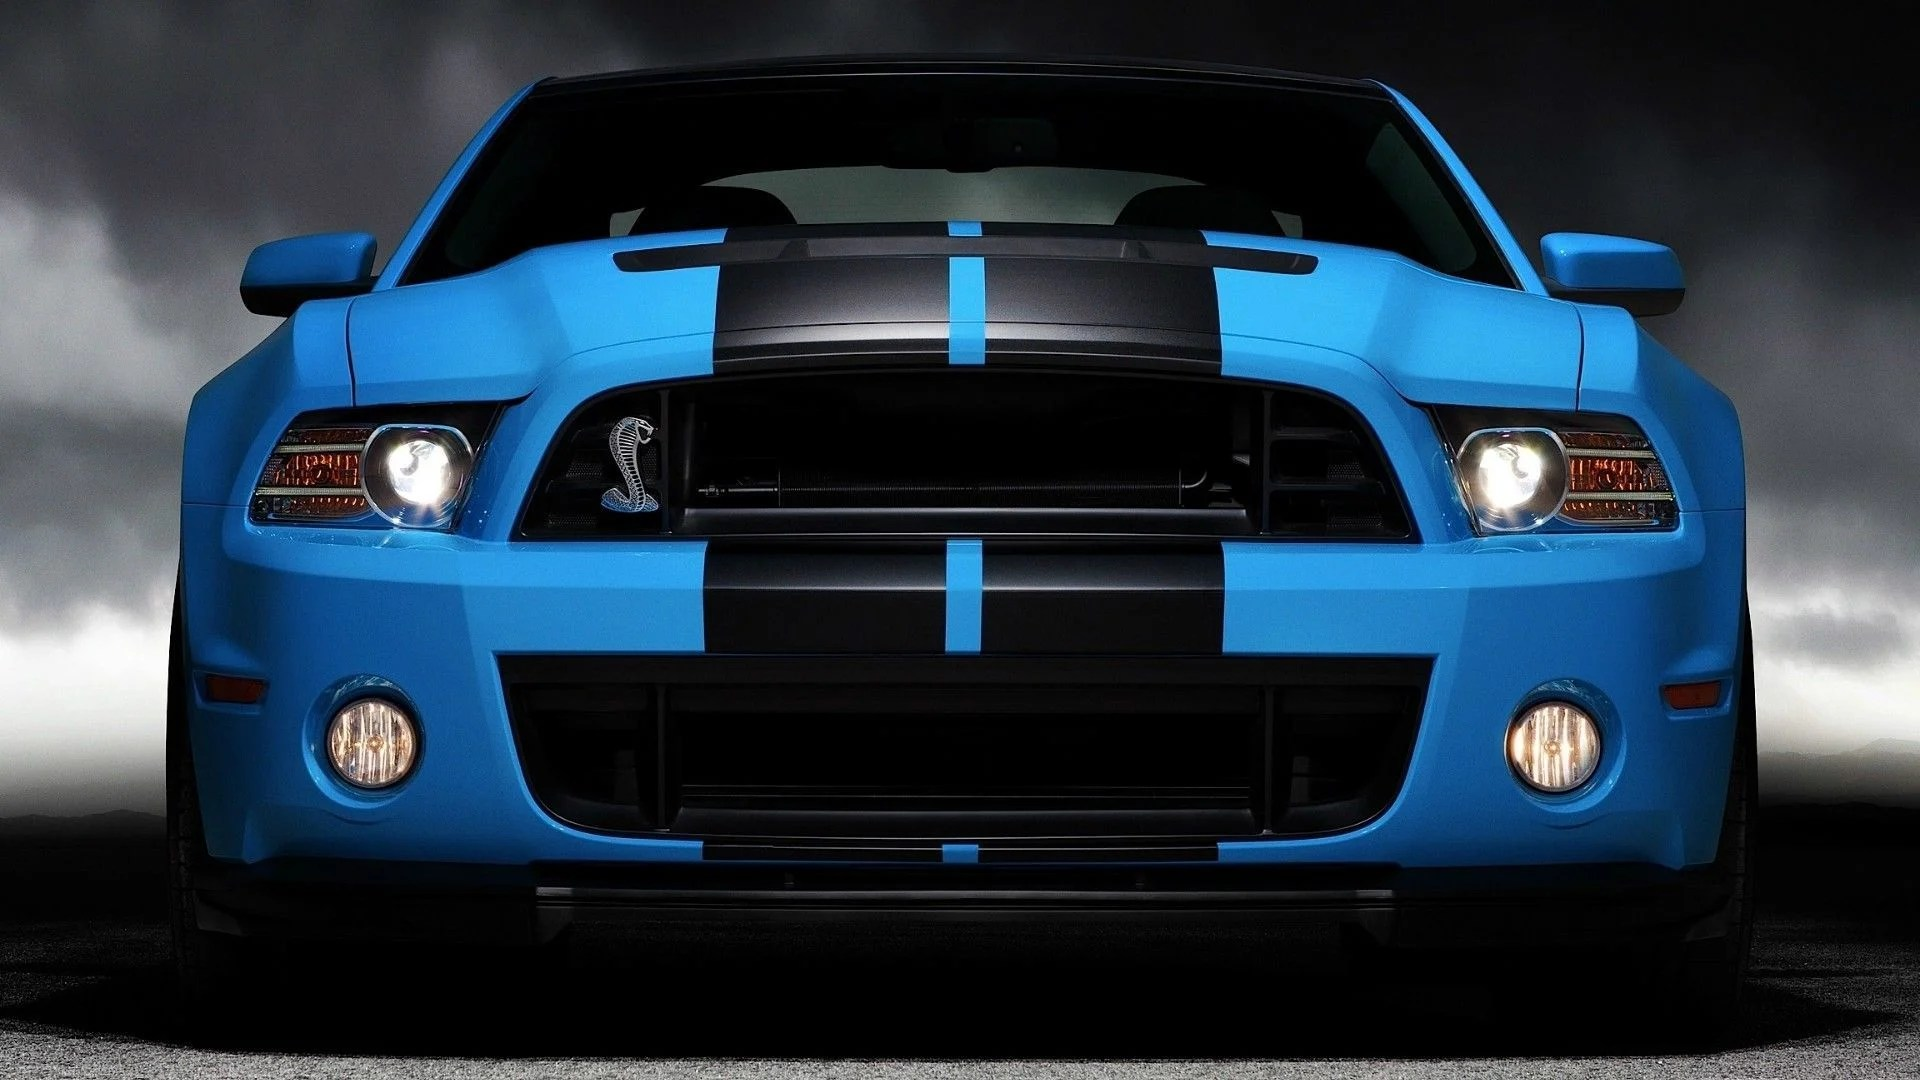 1275x641 fast and furious 7 car wallpaper. Ford Mustang Blue Laptop Hd Wallpapers Top Free Ford Mustang Blue Laptop Hd Backgrounds Wallpaperaccess